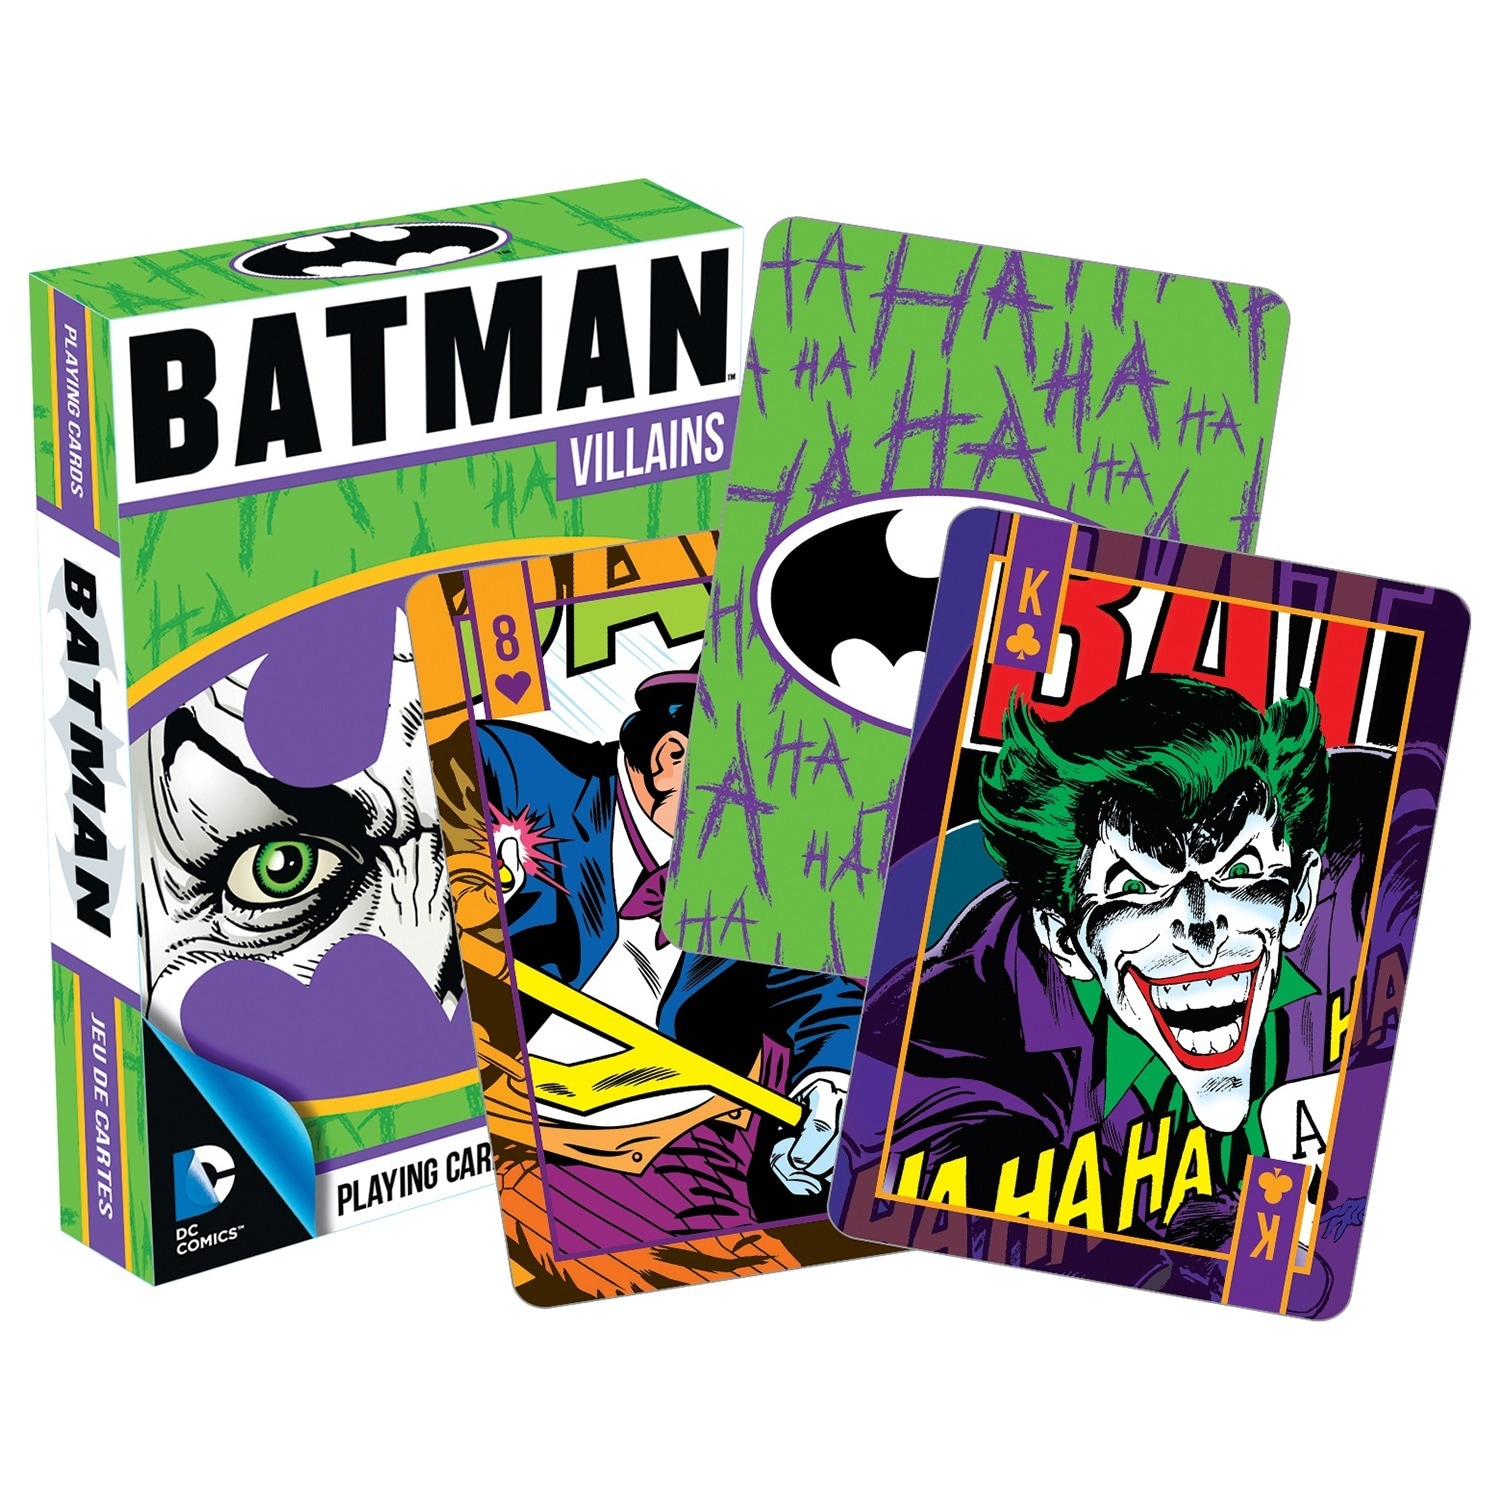 Nmr Distribution Batman 52265 Batman Villian Playing Card...